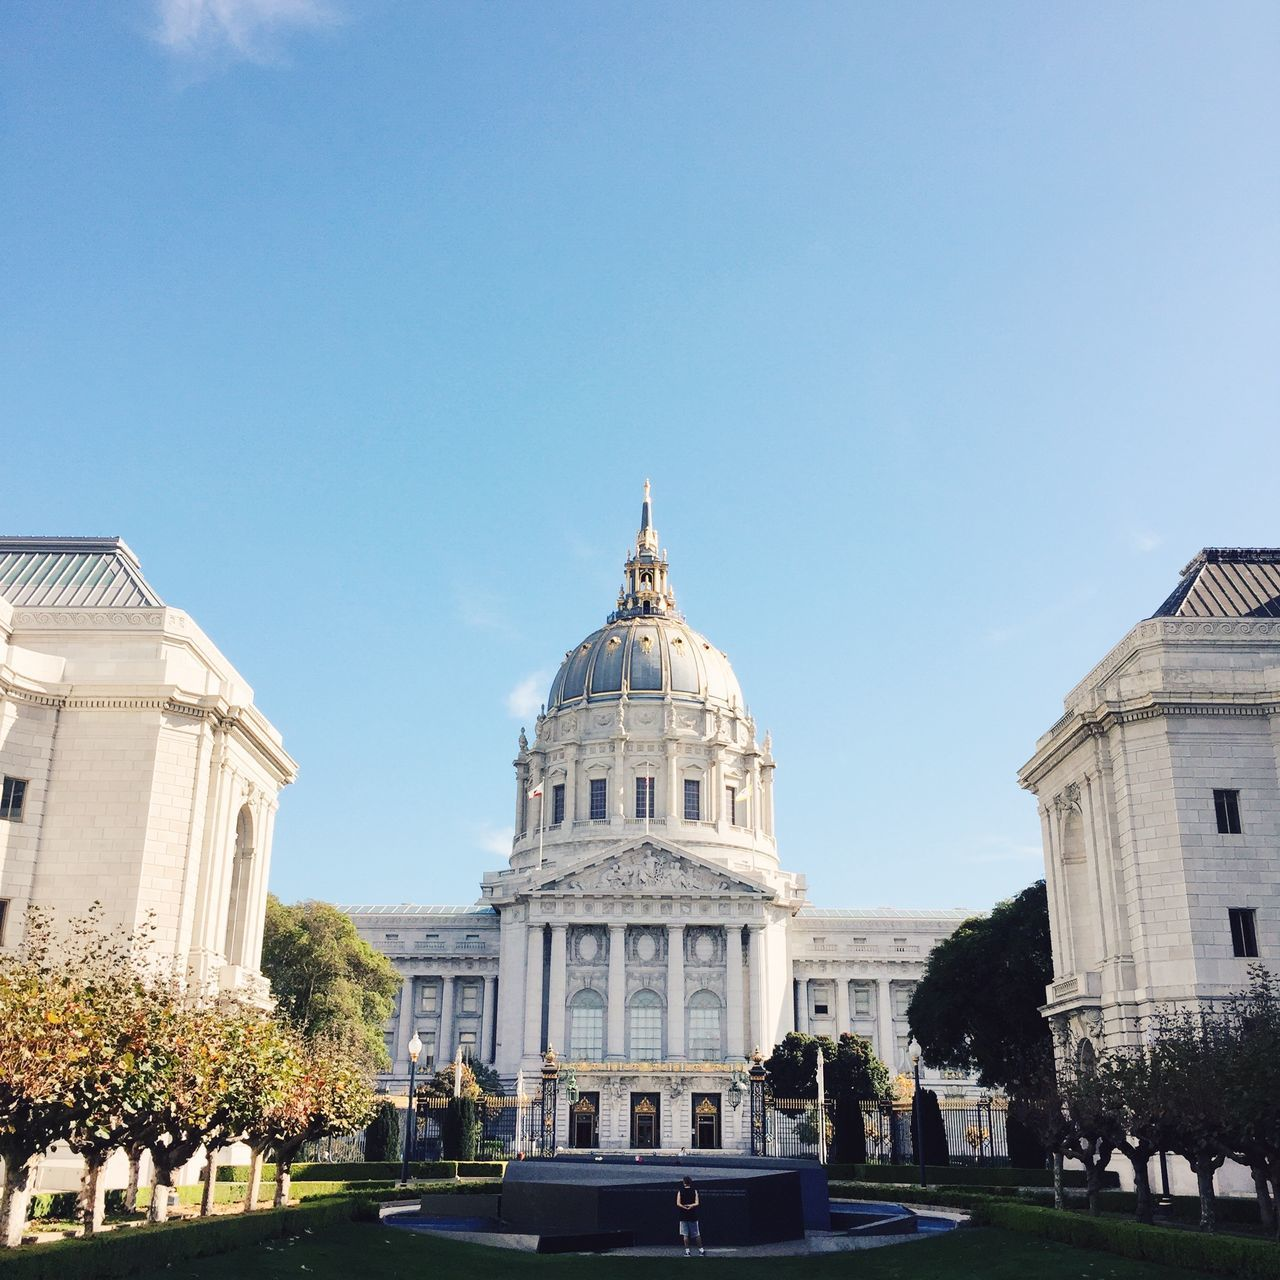 San Francisco City Hall, San Francisco, USA. Architecture Building Exterior Built Structure California City City Clear Sky Day Dome Government IPhone IPhoneography No People Outdoors San Francisco San Francisco City Hall Sky Square Travel Destinations Tree USA